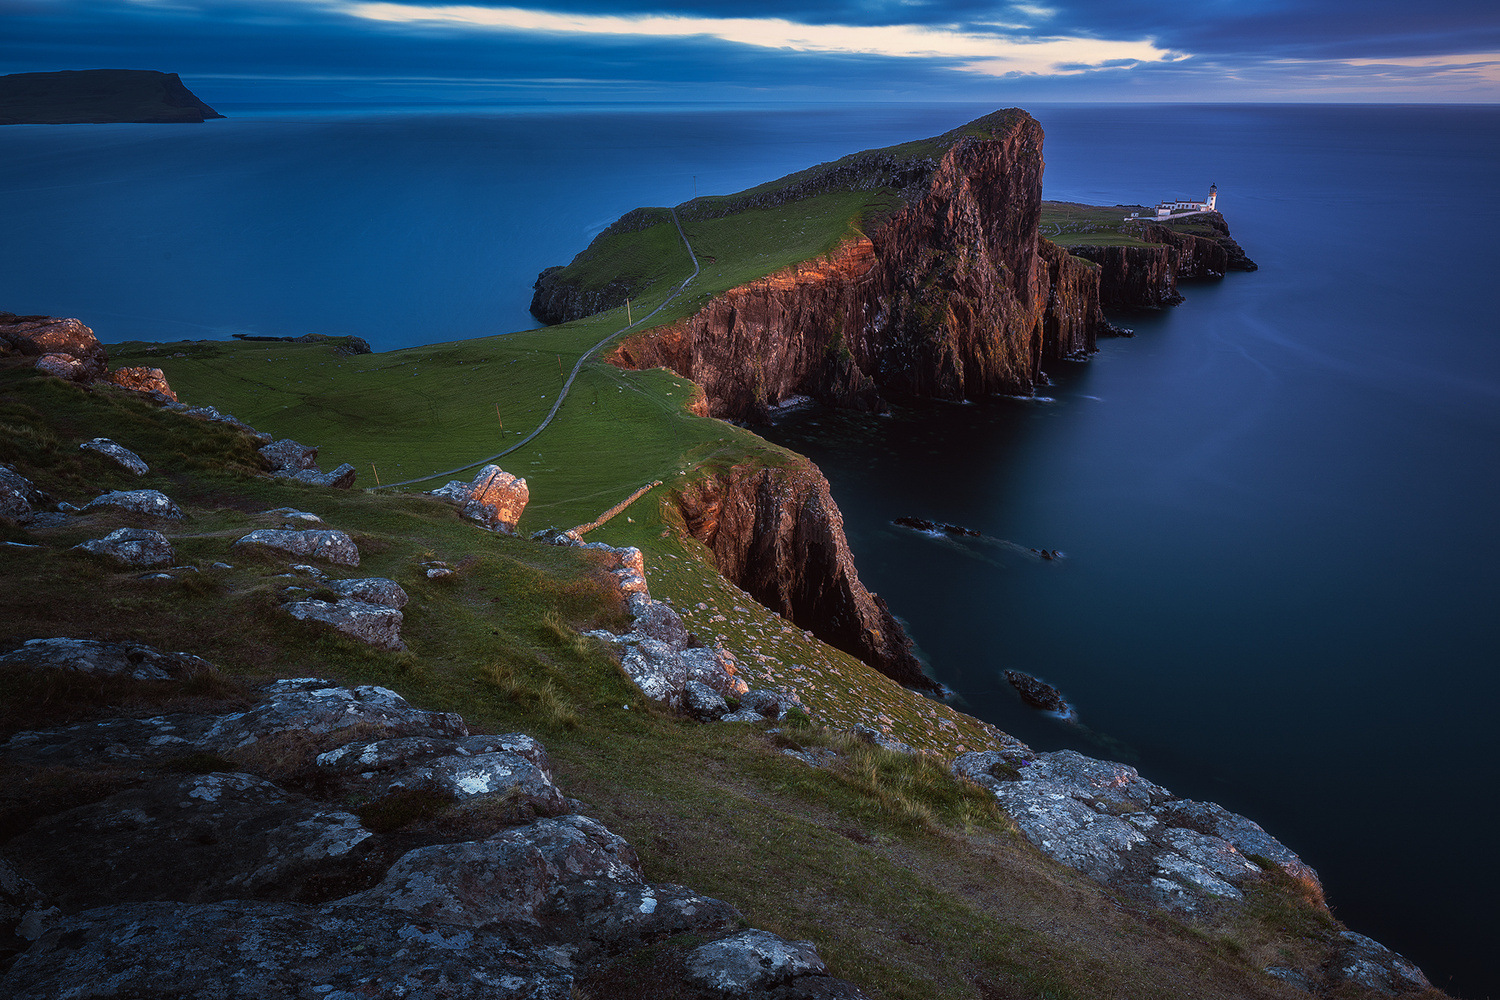 Scotland - Neist point Classic by Jean Claude Castor